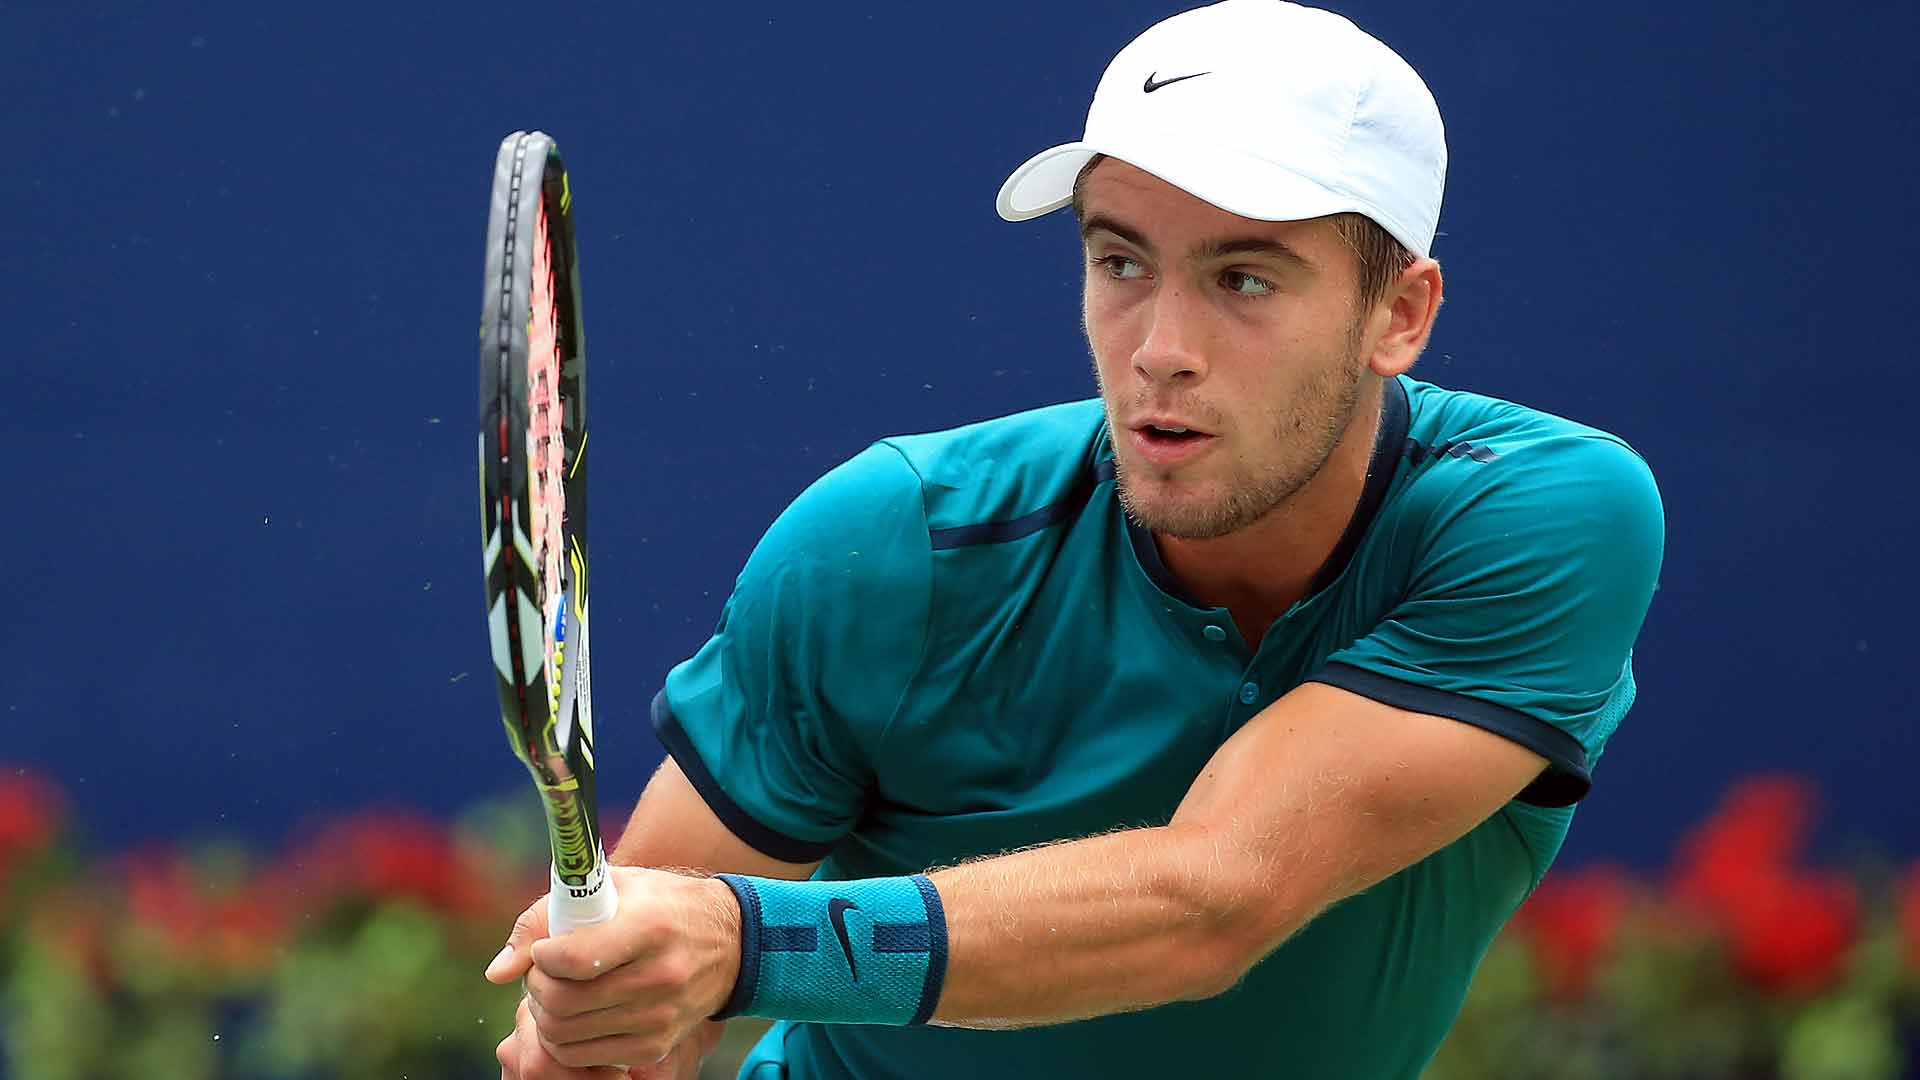 Borna Coric records a convincing win over Rafael Nadal on Thursday at the Western & Southern Open.